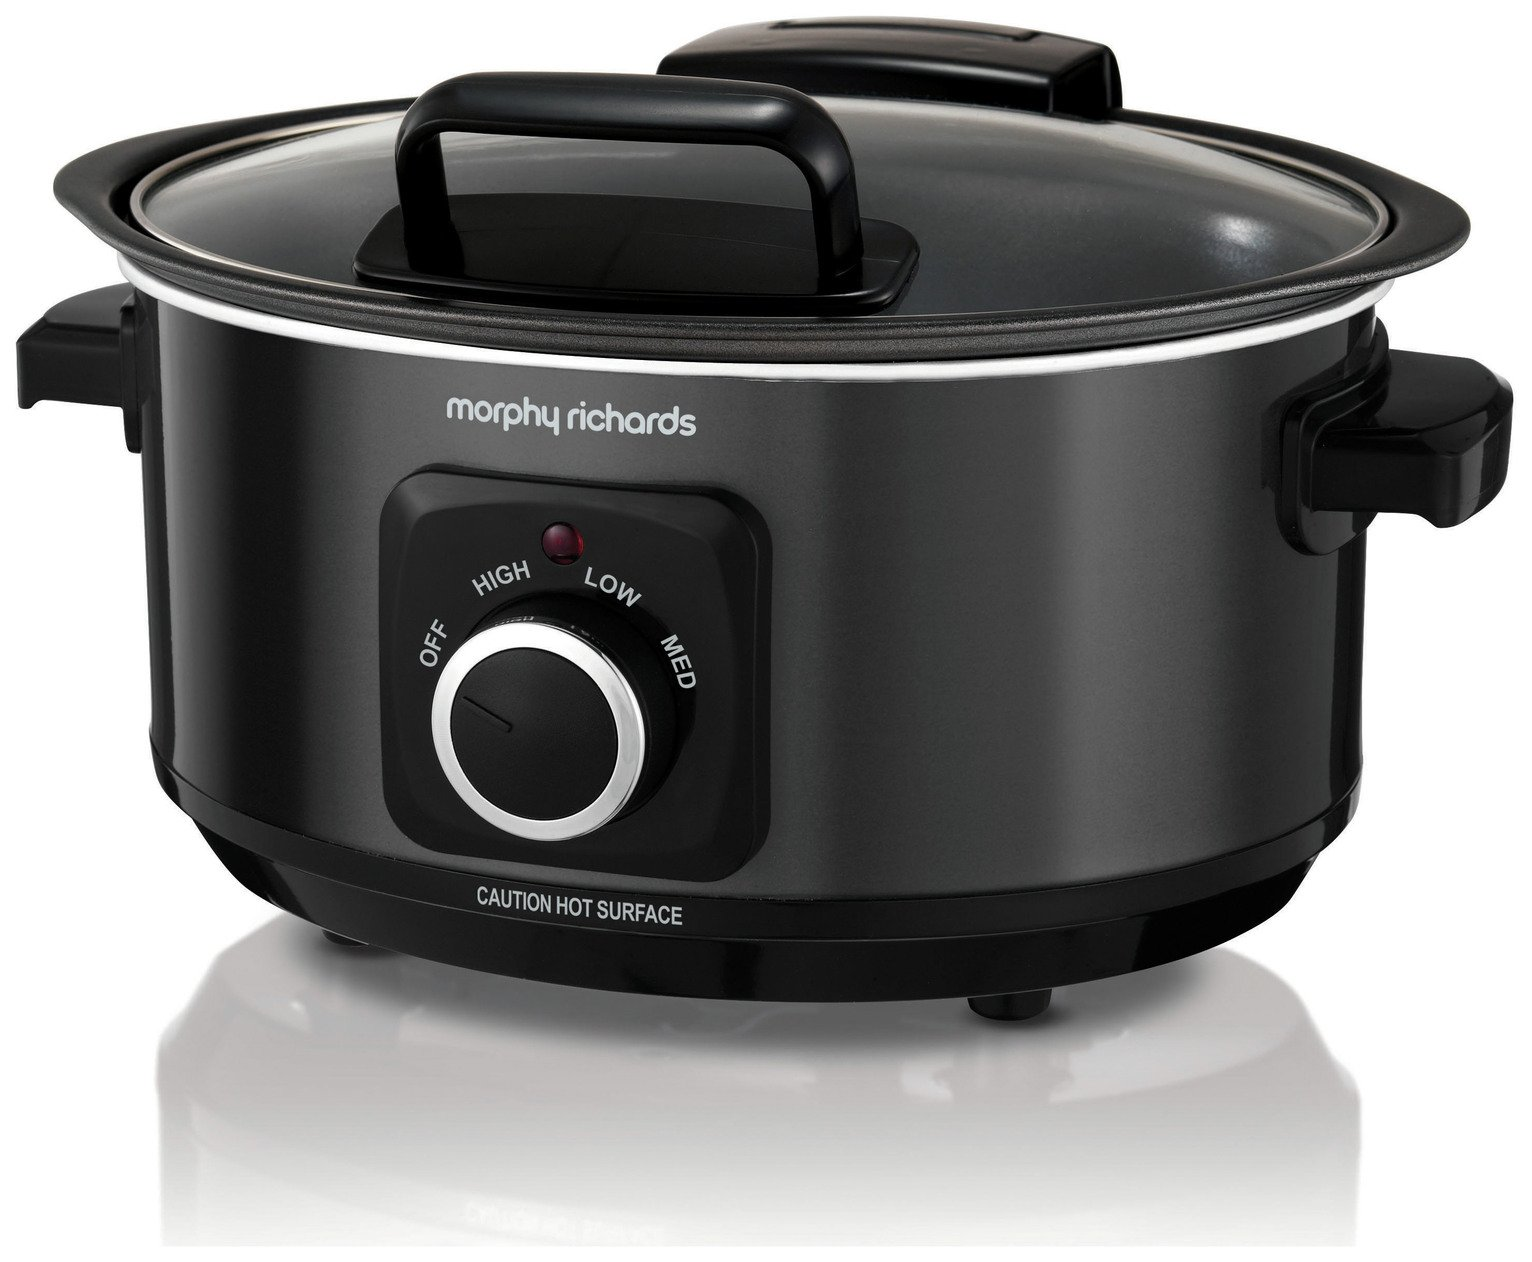 Morphy Richards 3.5L Hinged Lid Slow Cooker - Black